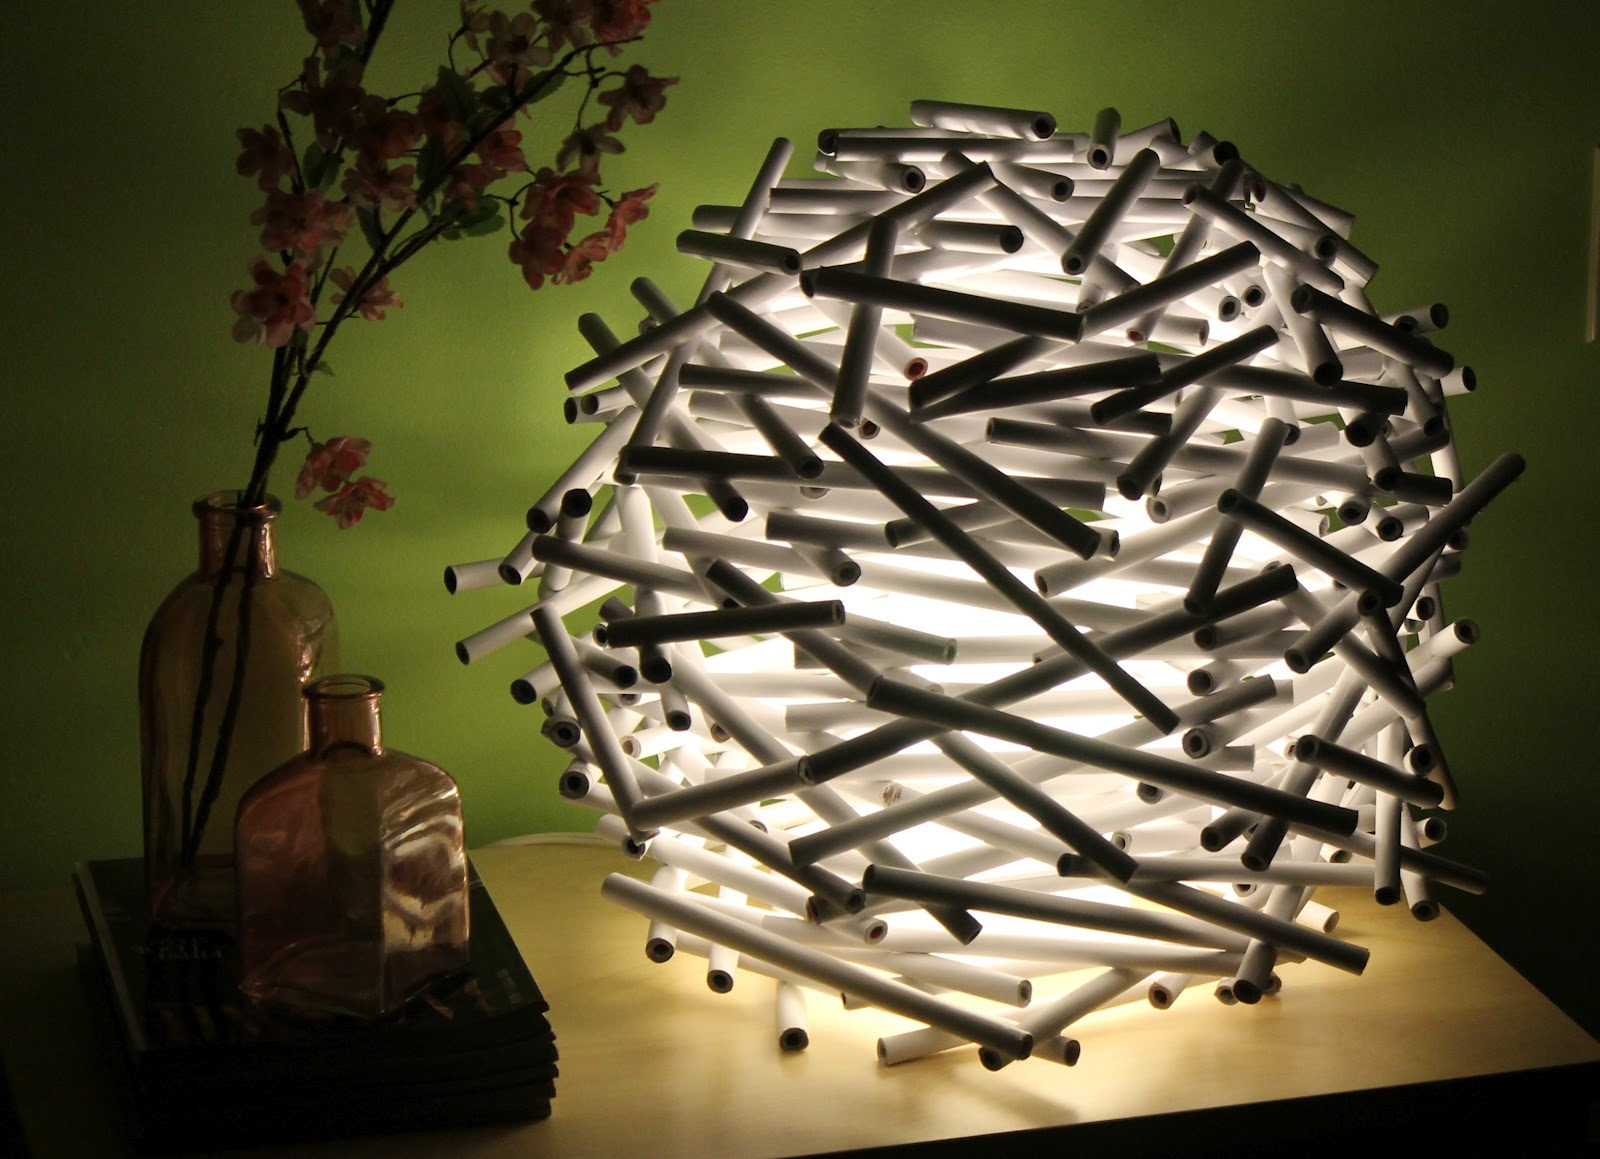 DIY} How To Make A Bird's Nest Lamp Shade Out of Newspaper | Catch ...